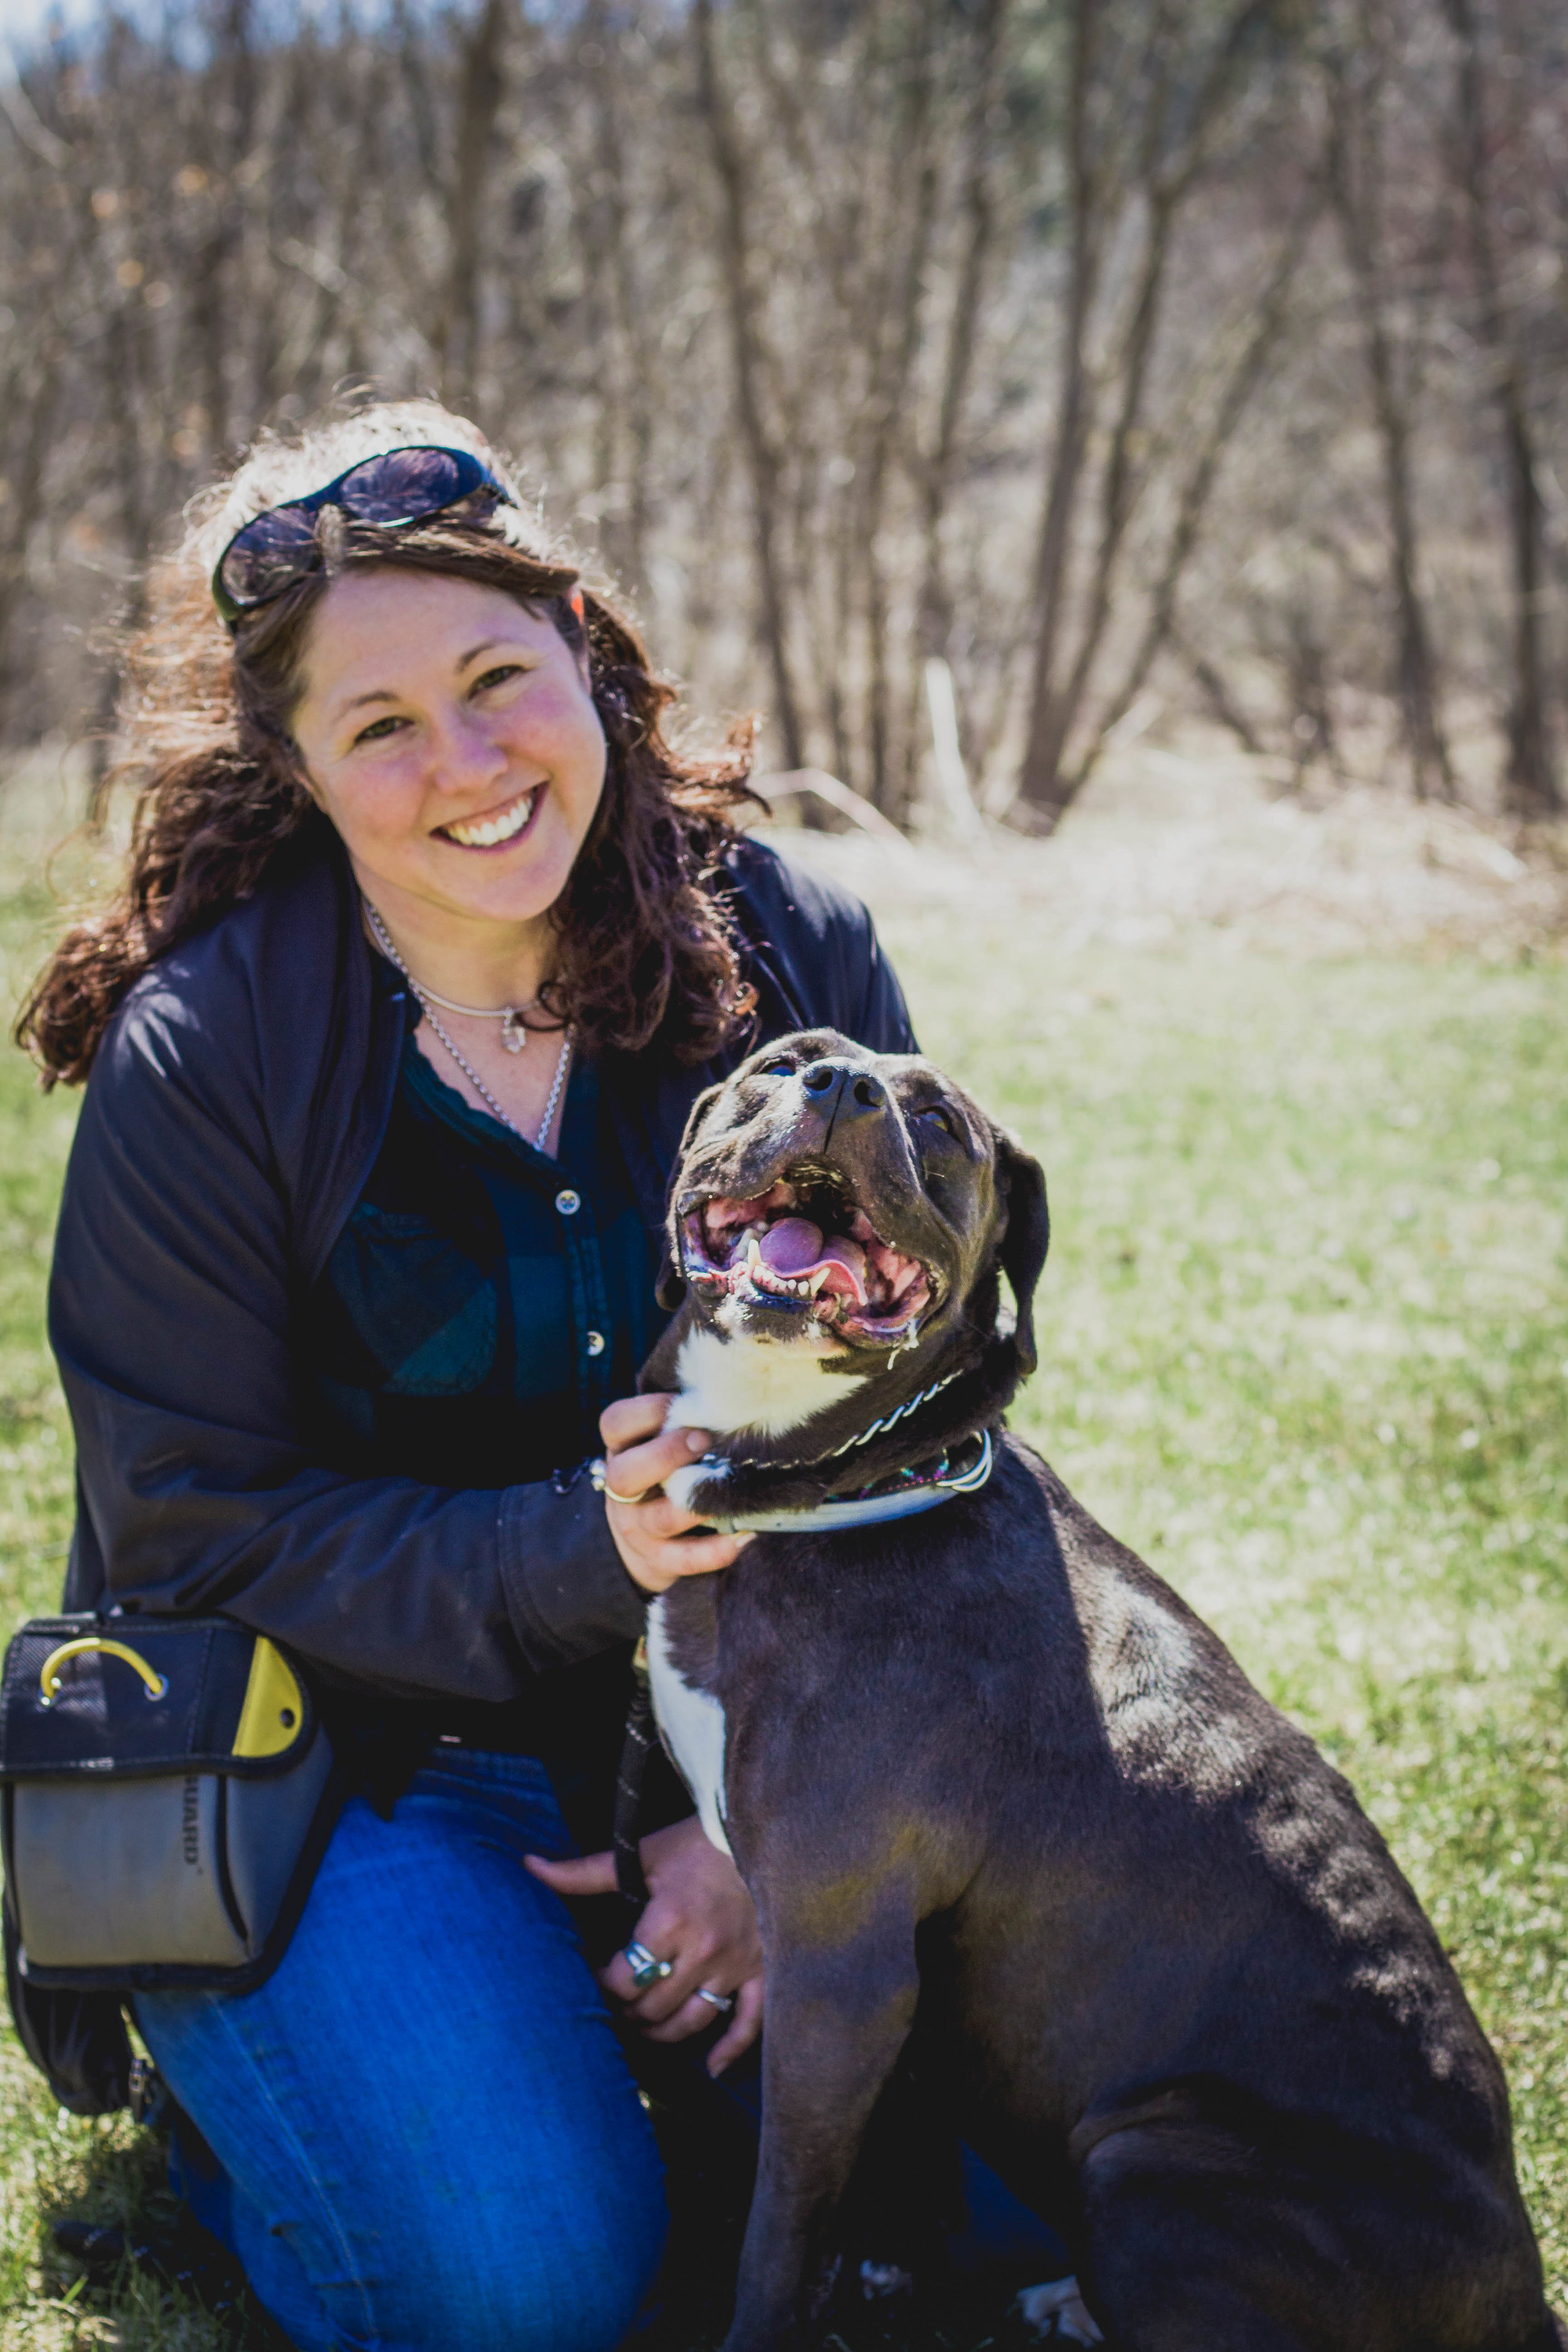 founder/owner of rising canine dog training - heather mach